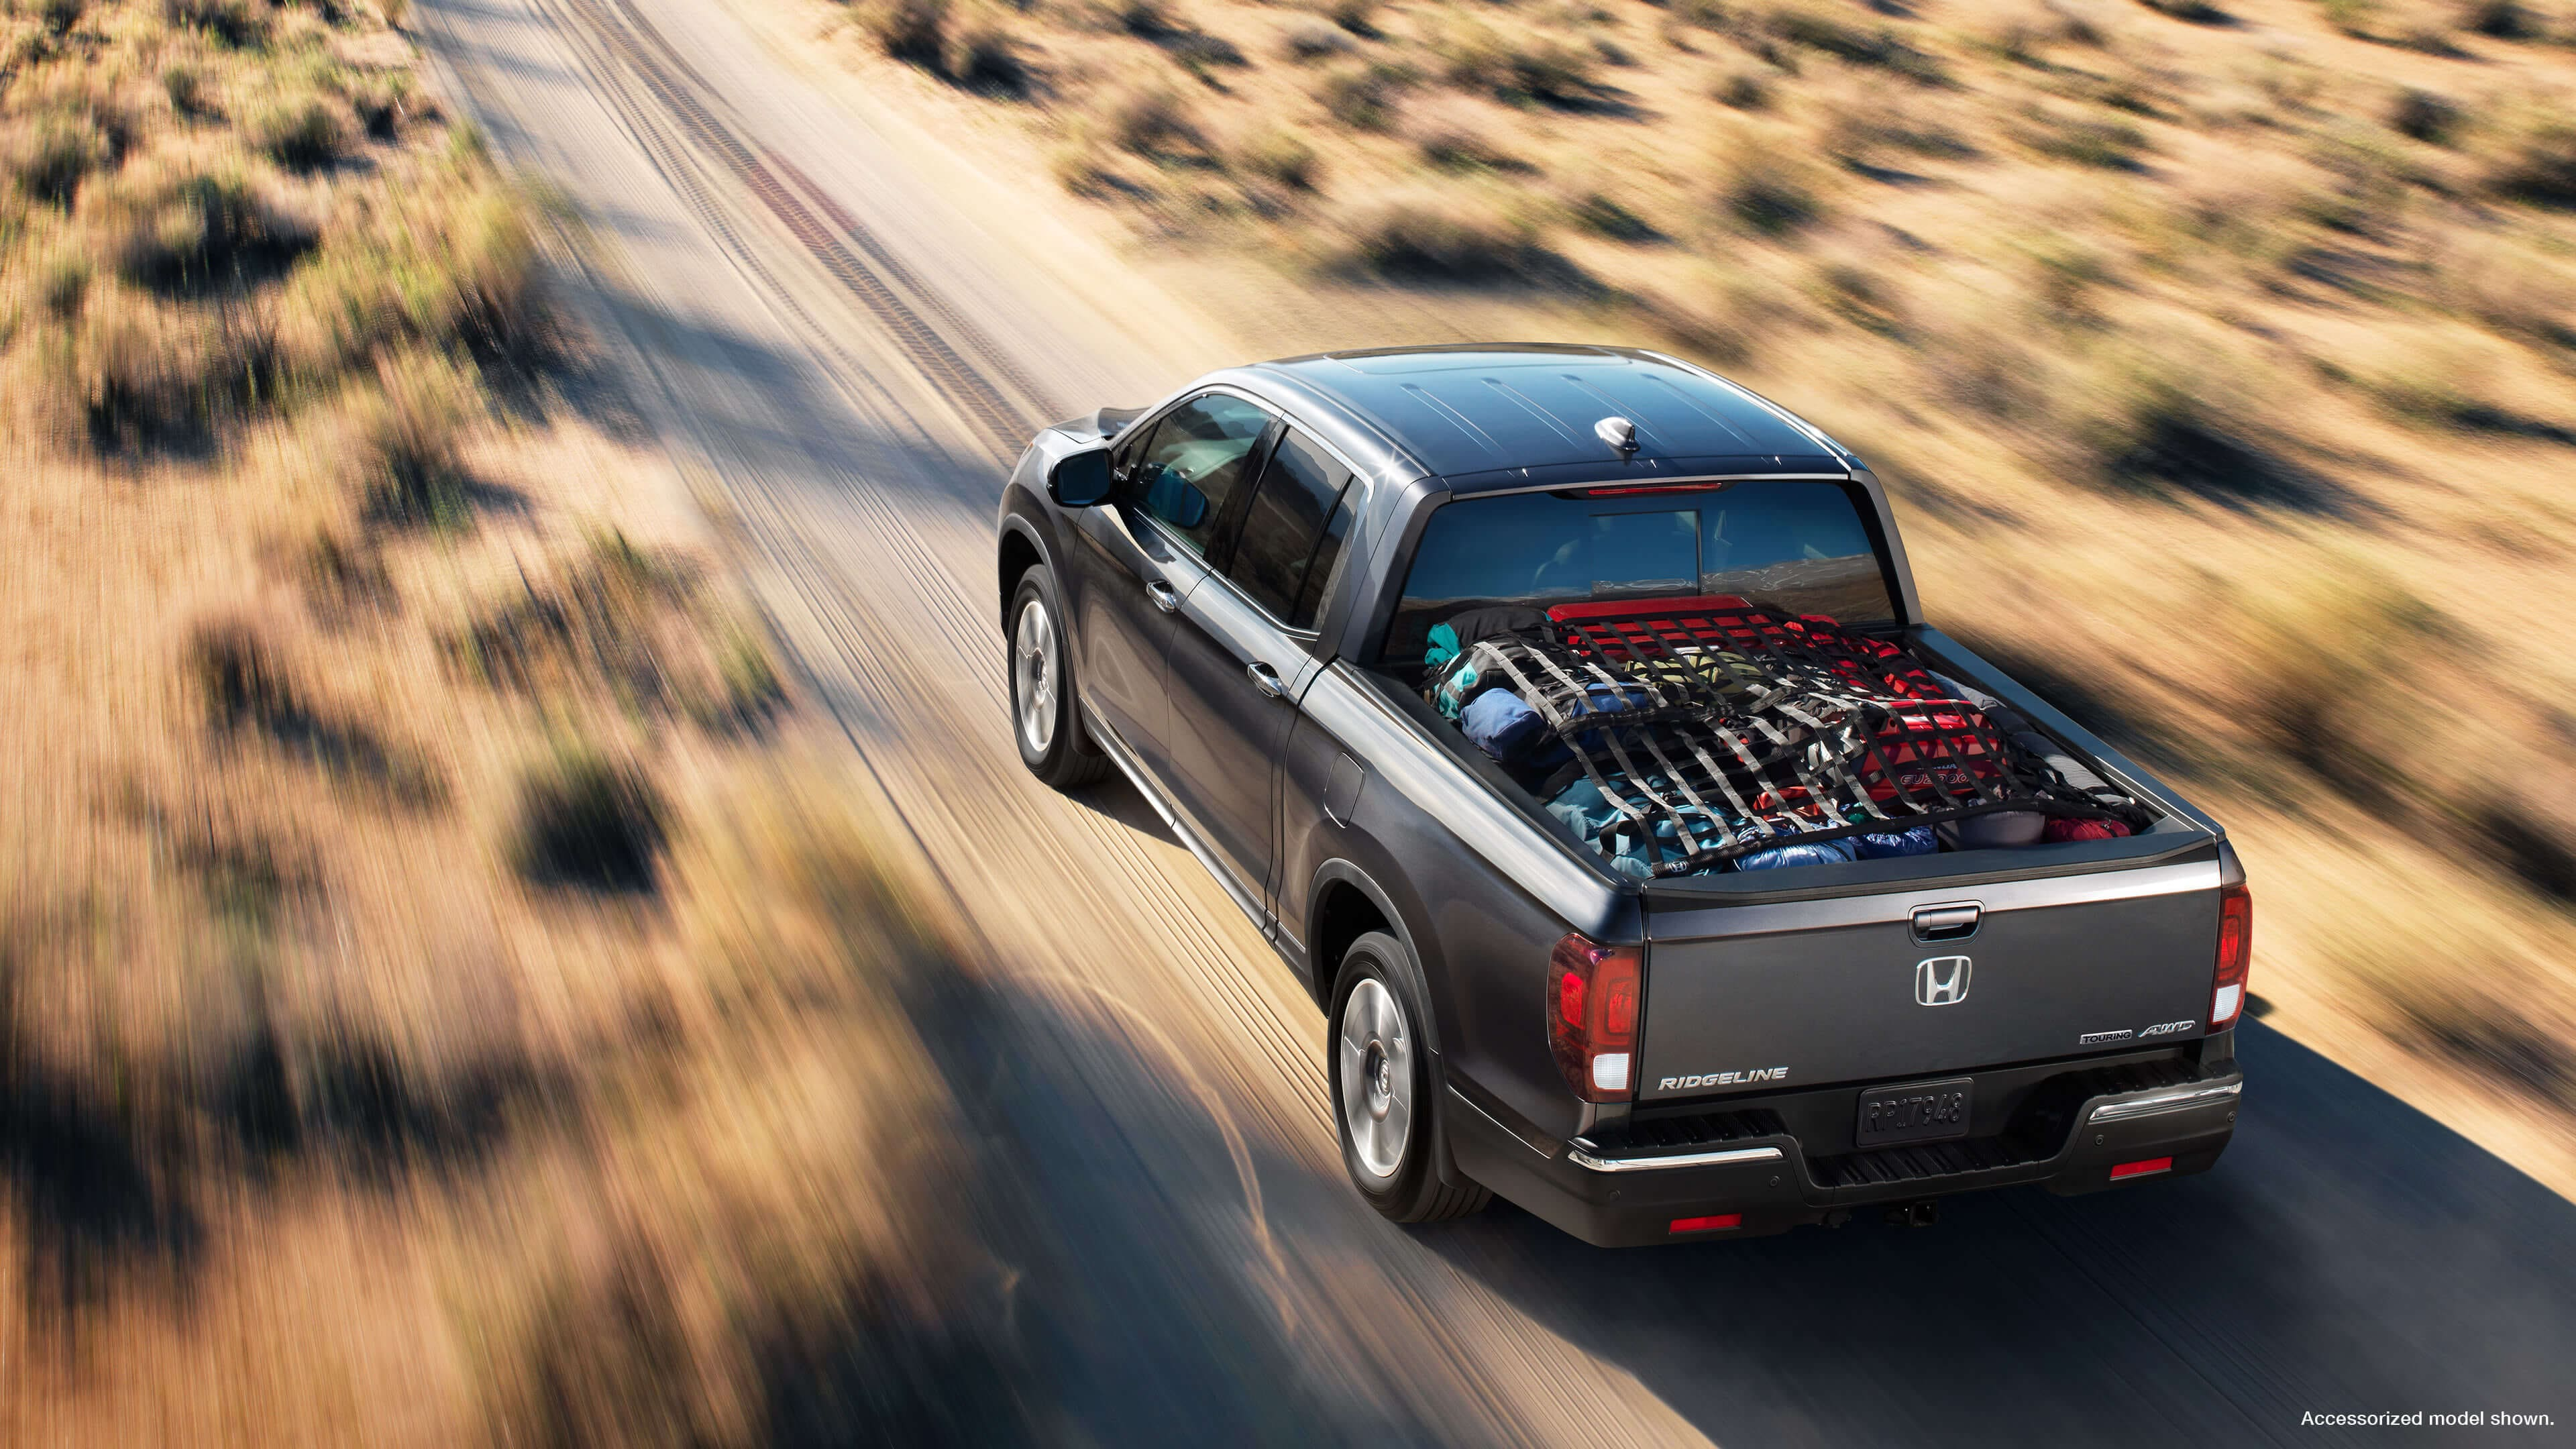 Overhead view of 2020 Honda Ridgeline driving on a country road with a full cargo bed